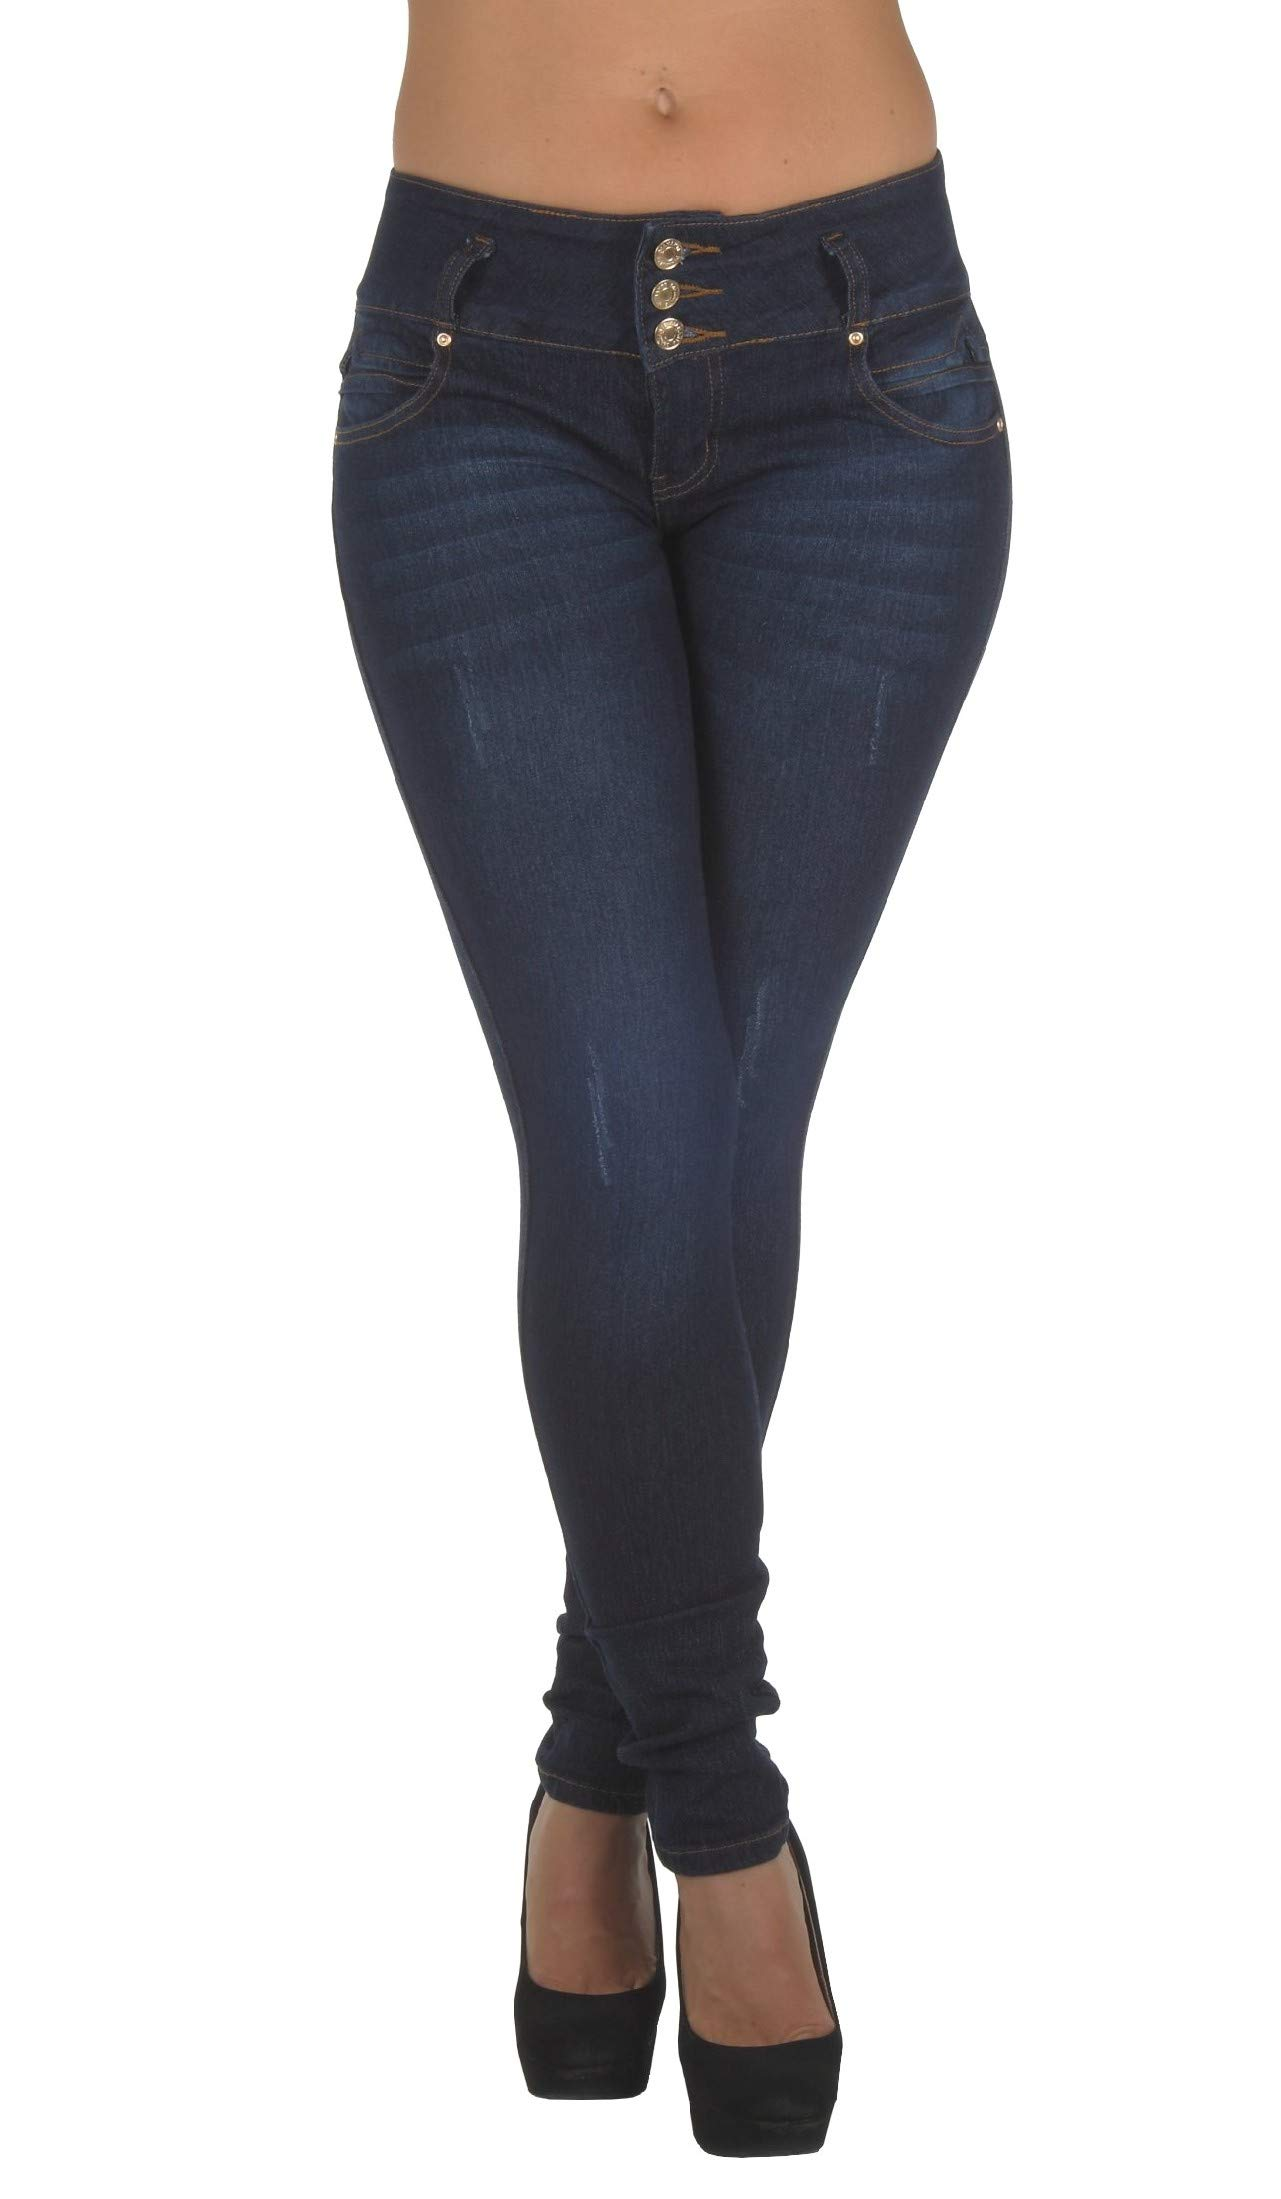 Style N491SK– Colombian Design, Butt Lift, Levanta Cola, Stretch Skinny Jeans in Dark Blue Size 1